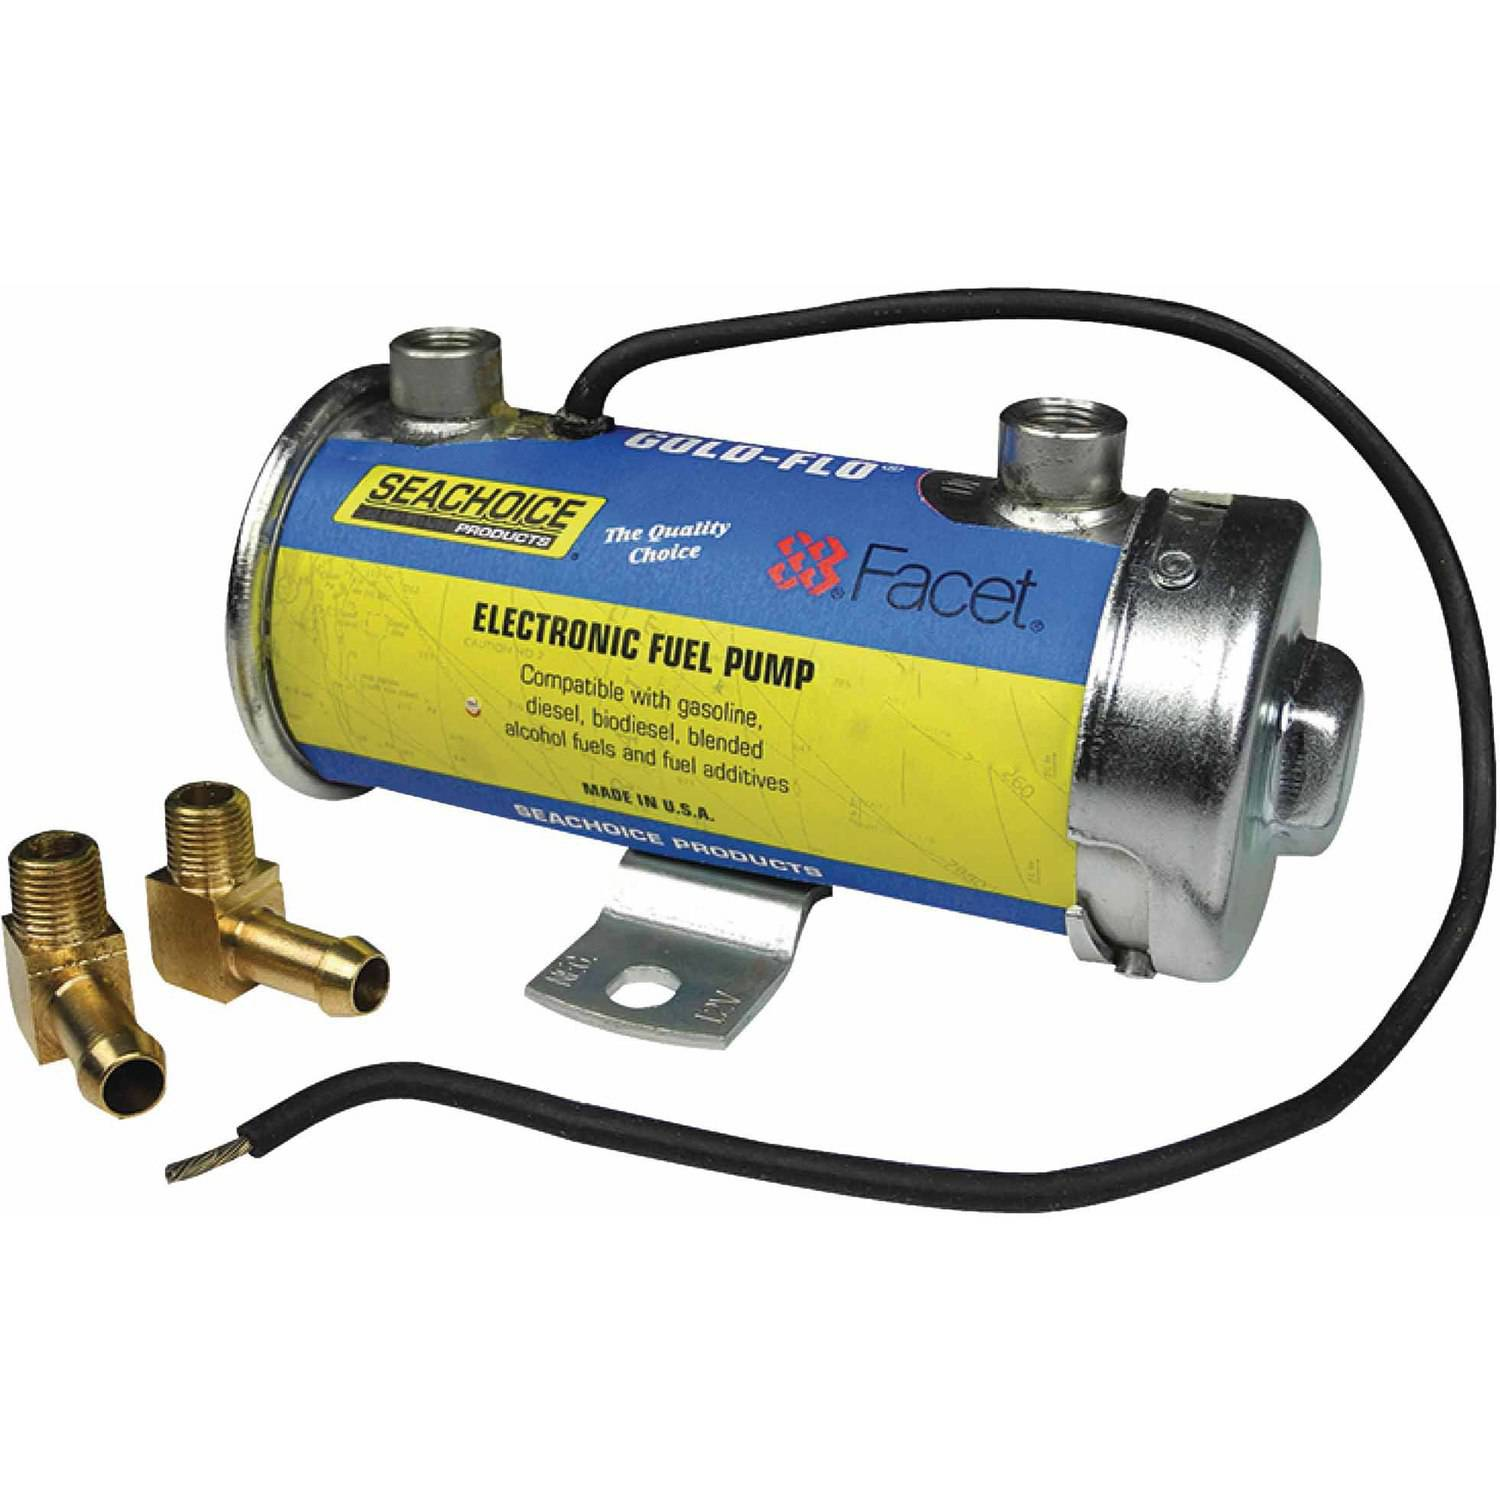 Seachoice 20301 12V Gold-Flo High Performance Electronic Fuel Pump Kit, 34 GPH by Seachoice Products